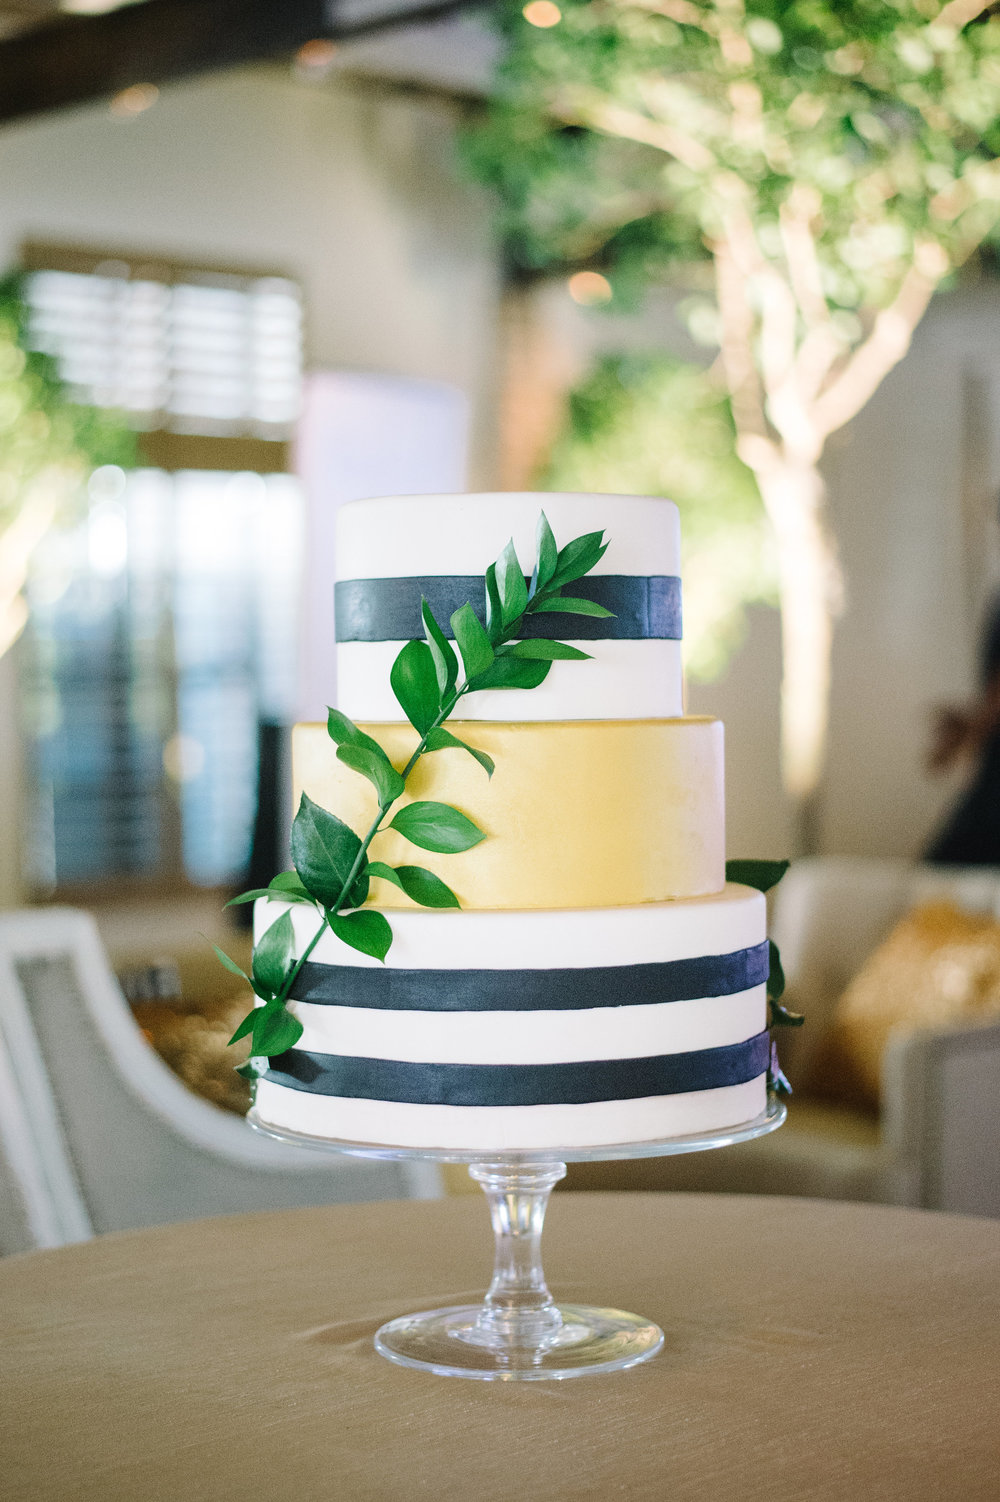 black-and-white-striped-caked-with-gold-center-and-greenery-wrapping-around-charleston-delicious-desserts-the-knot-market-mixer-cannon-green